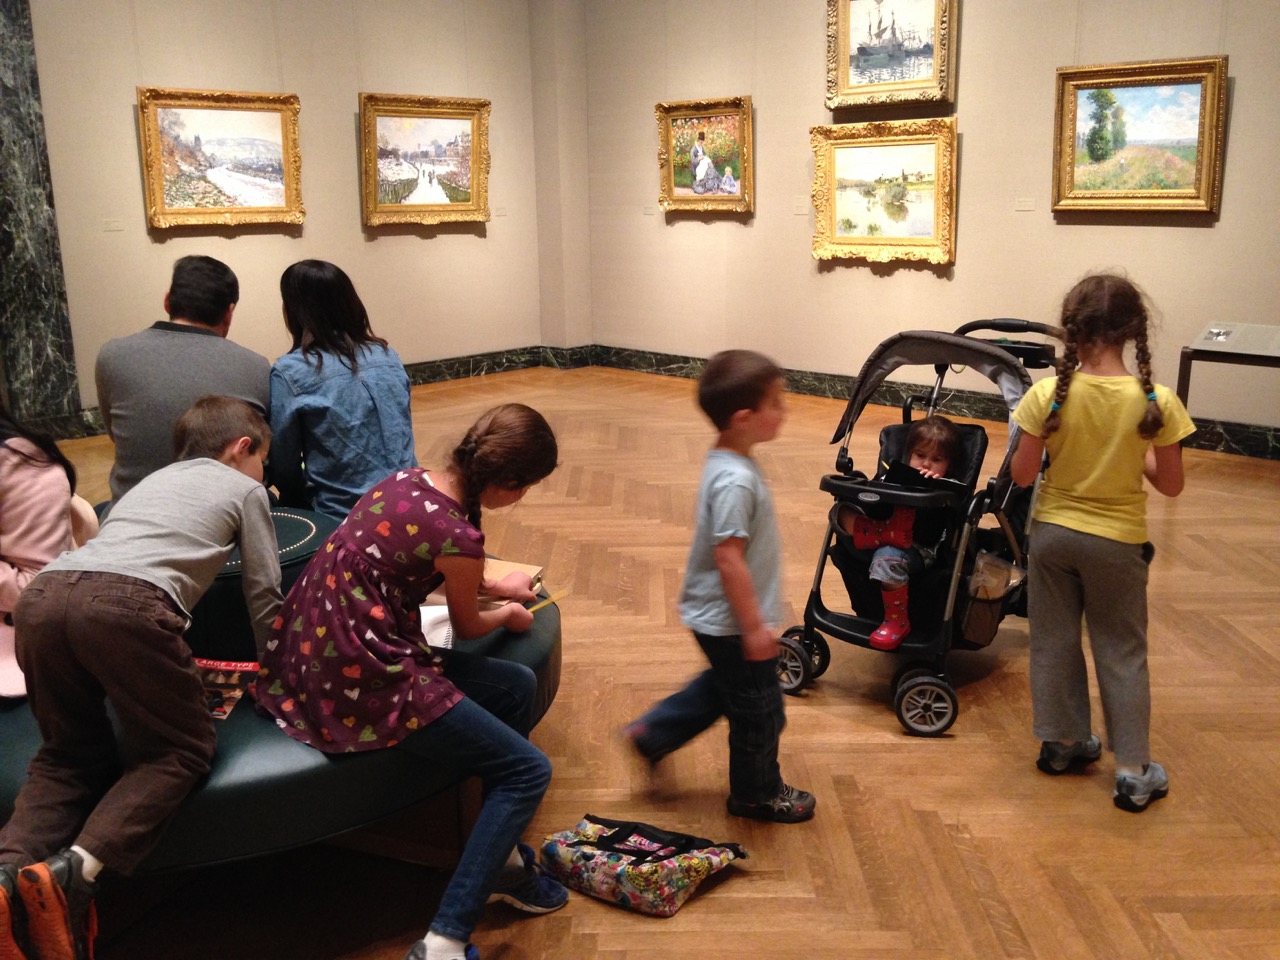 The kids and the Impressionists.